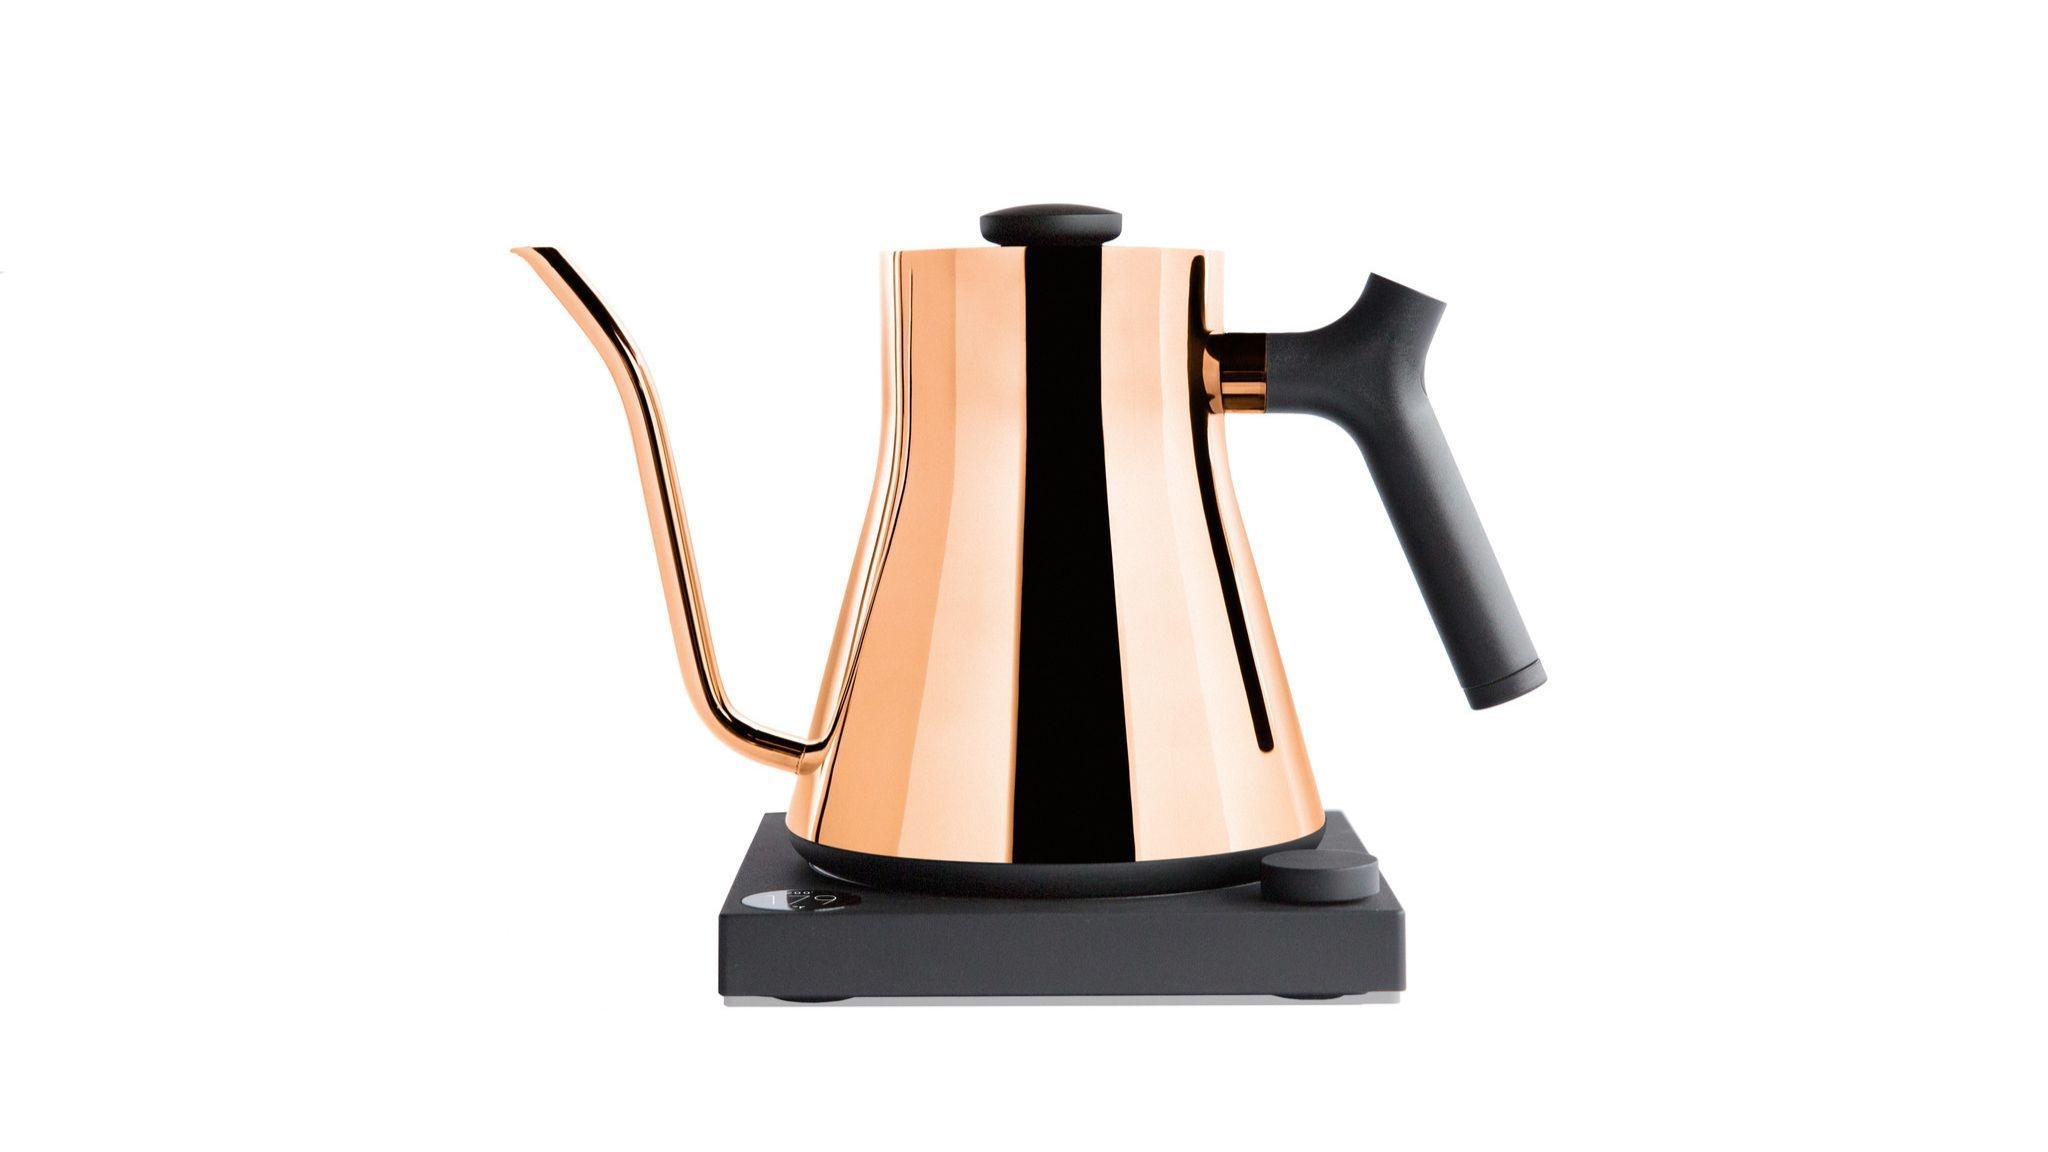 Coffee tools and gadgets for a new era of brewing